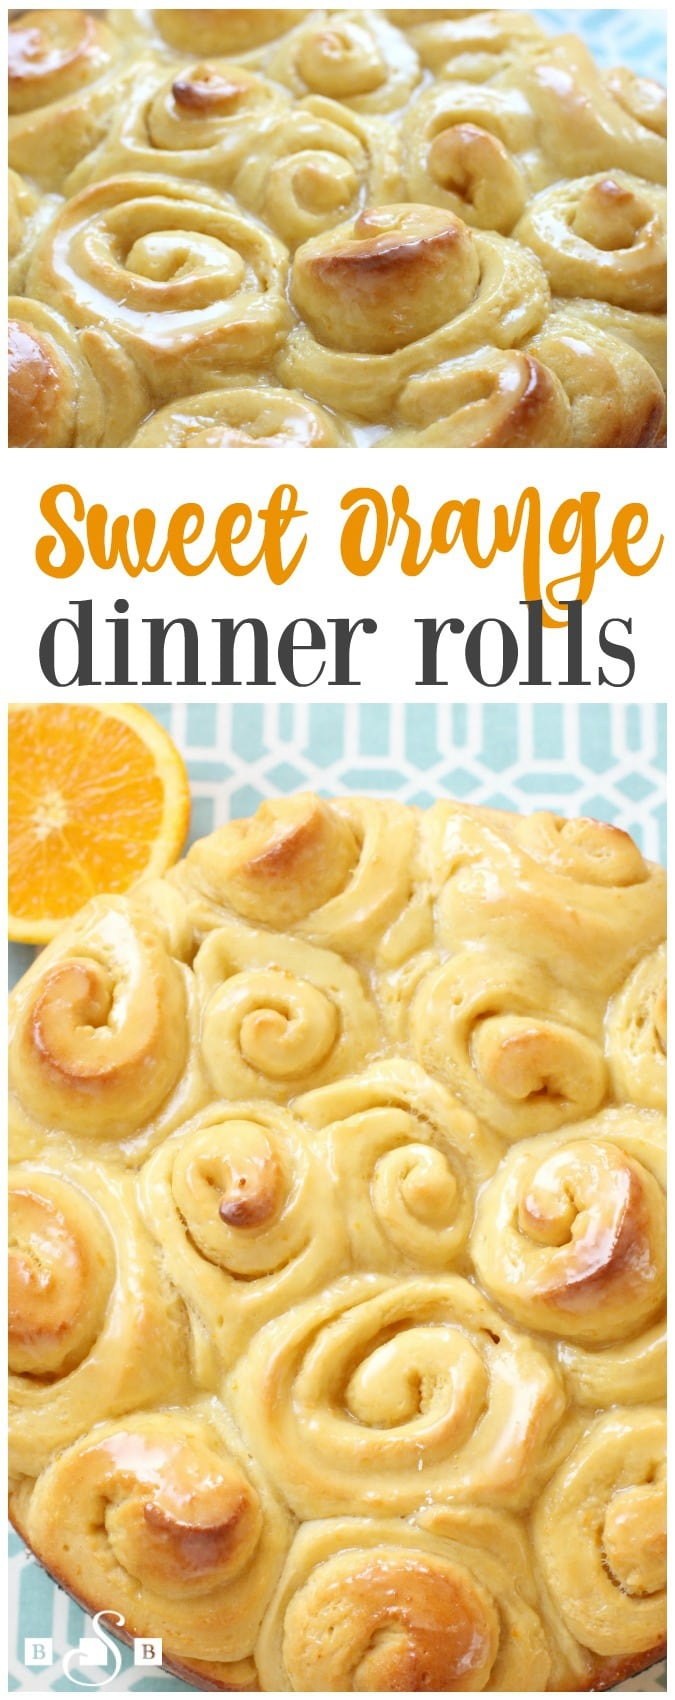 Sweet Orange Dinner Rolls are incredible homemade rolls with a bright, fresh orange flavor. Easy recipe for lightly glazed and perfectly sweet dinner rolls!